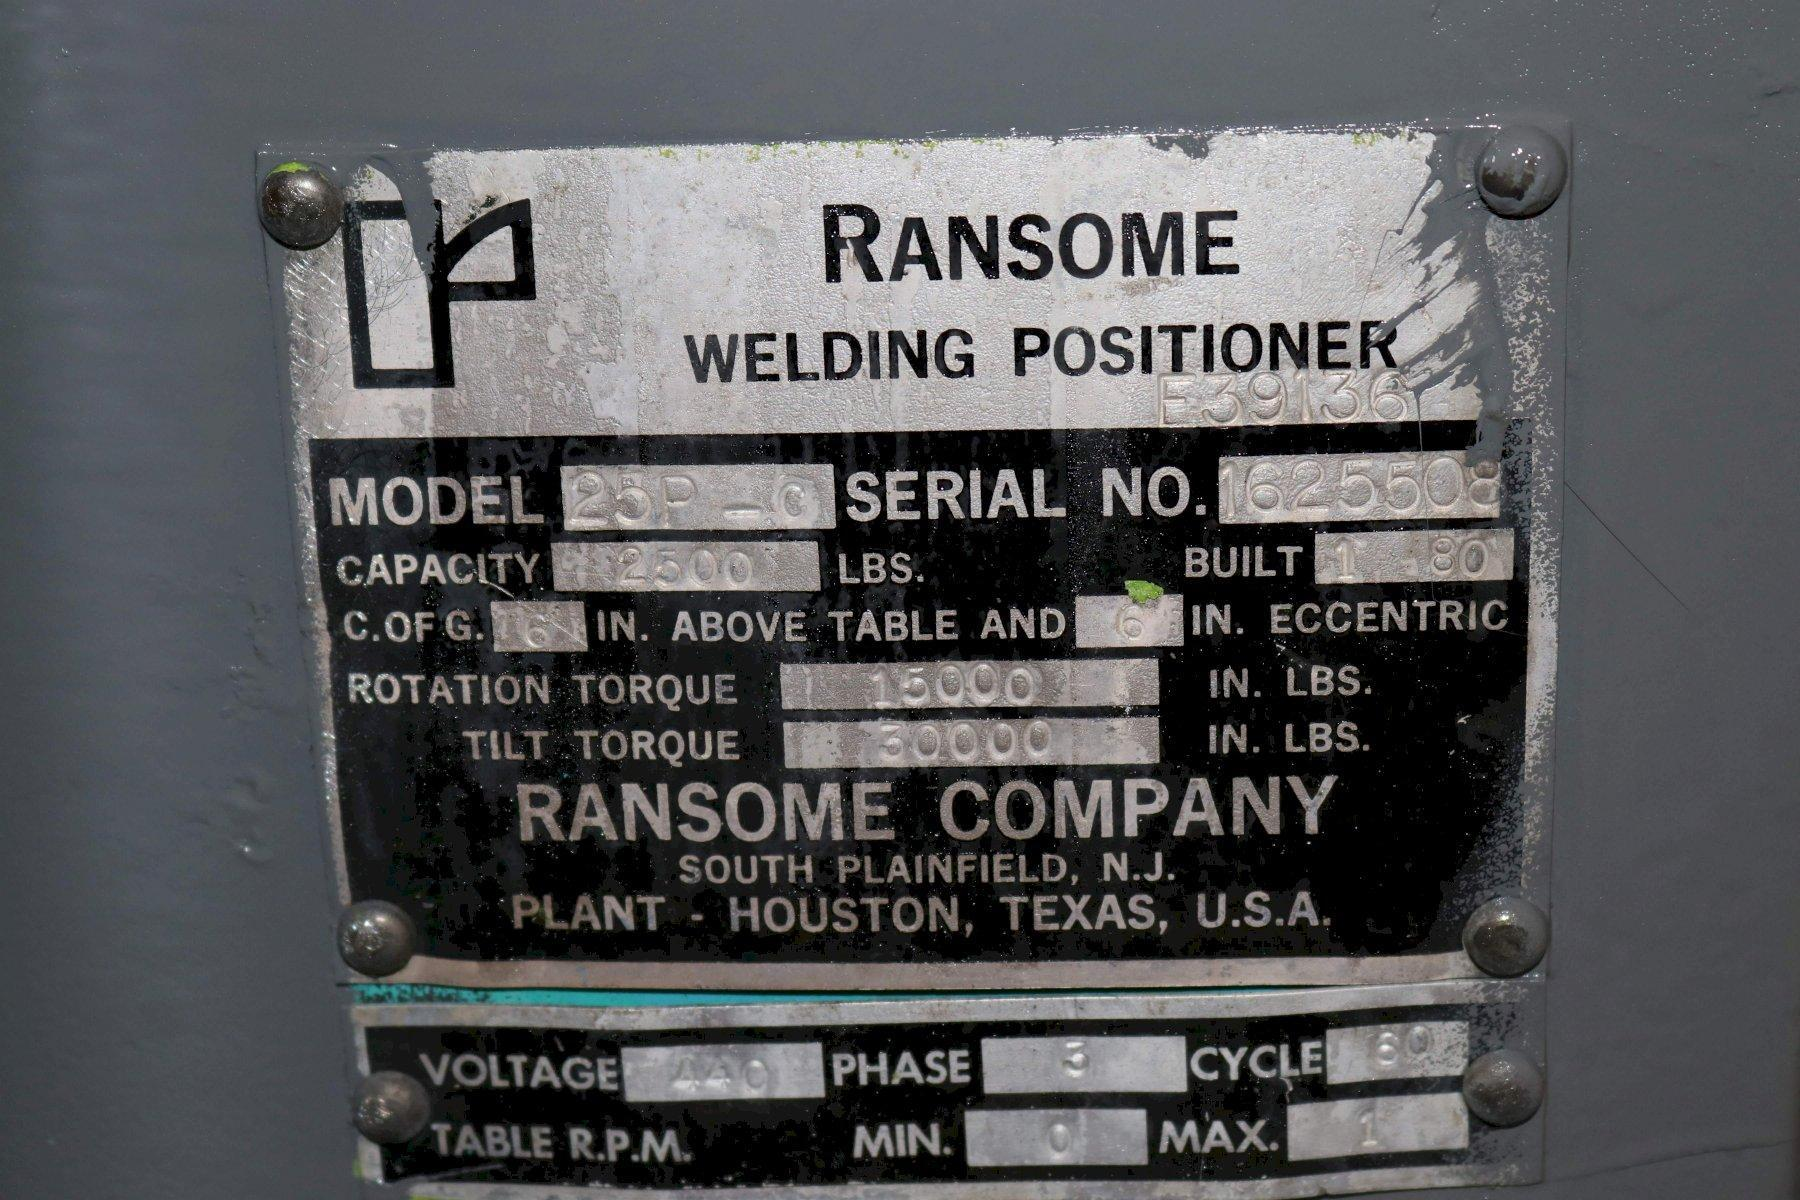 2500 LBS RANSOME WELDING POSITIONER: STOCK #72949